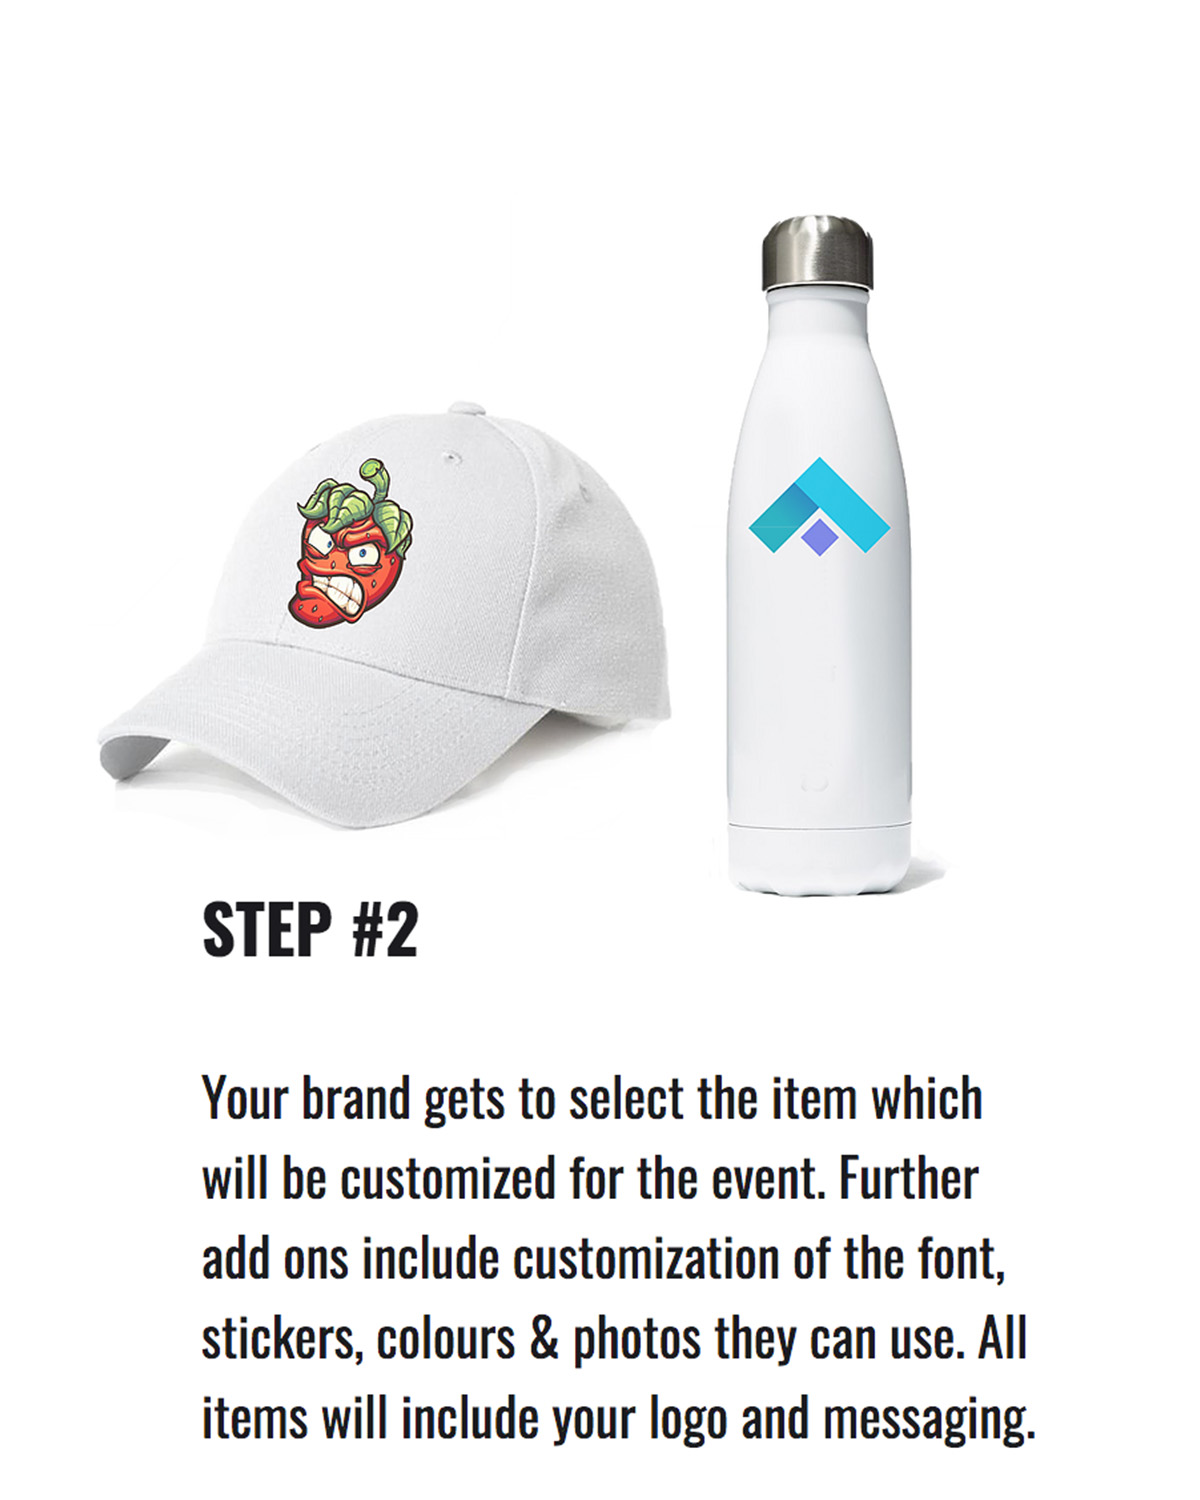 customized merchandise with custom messaging